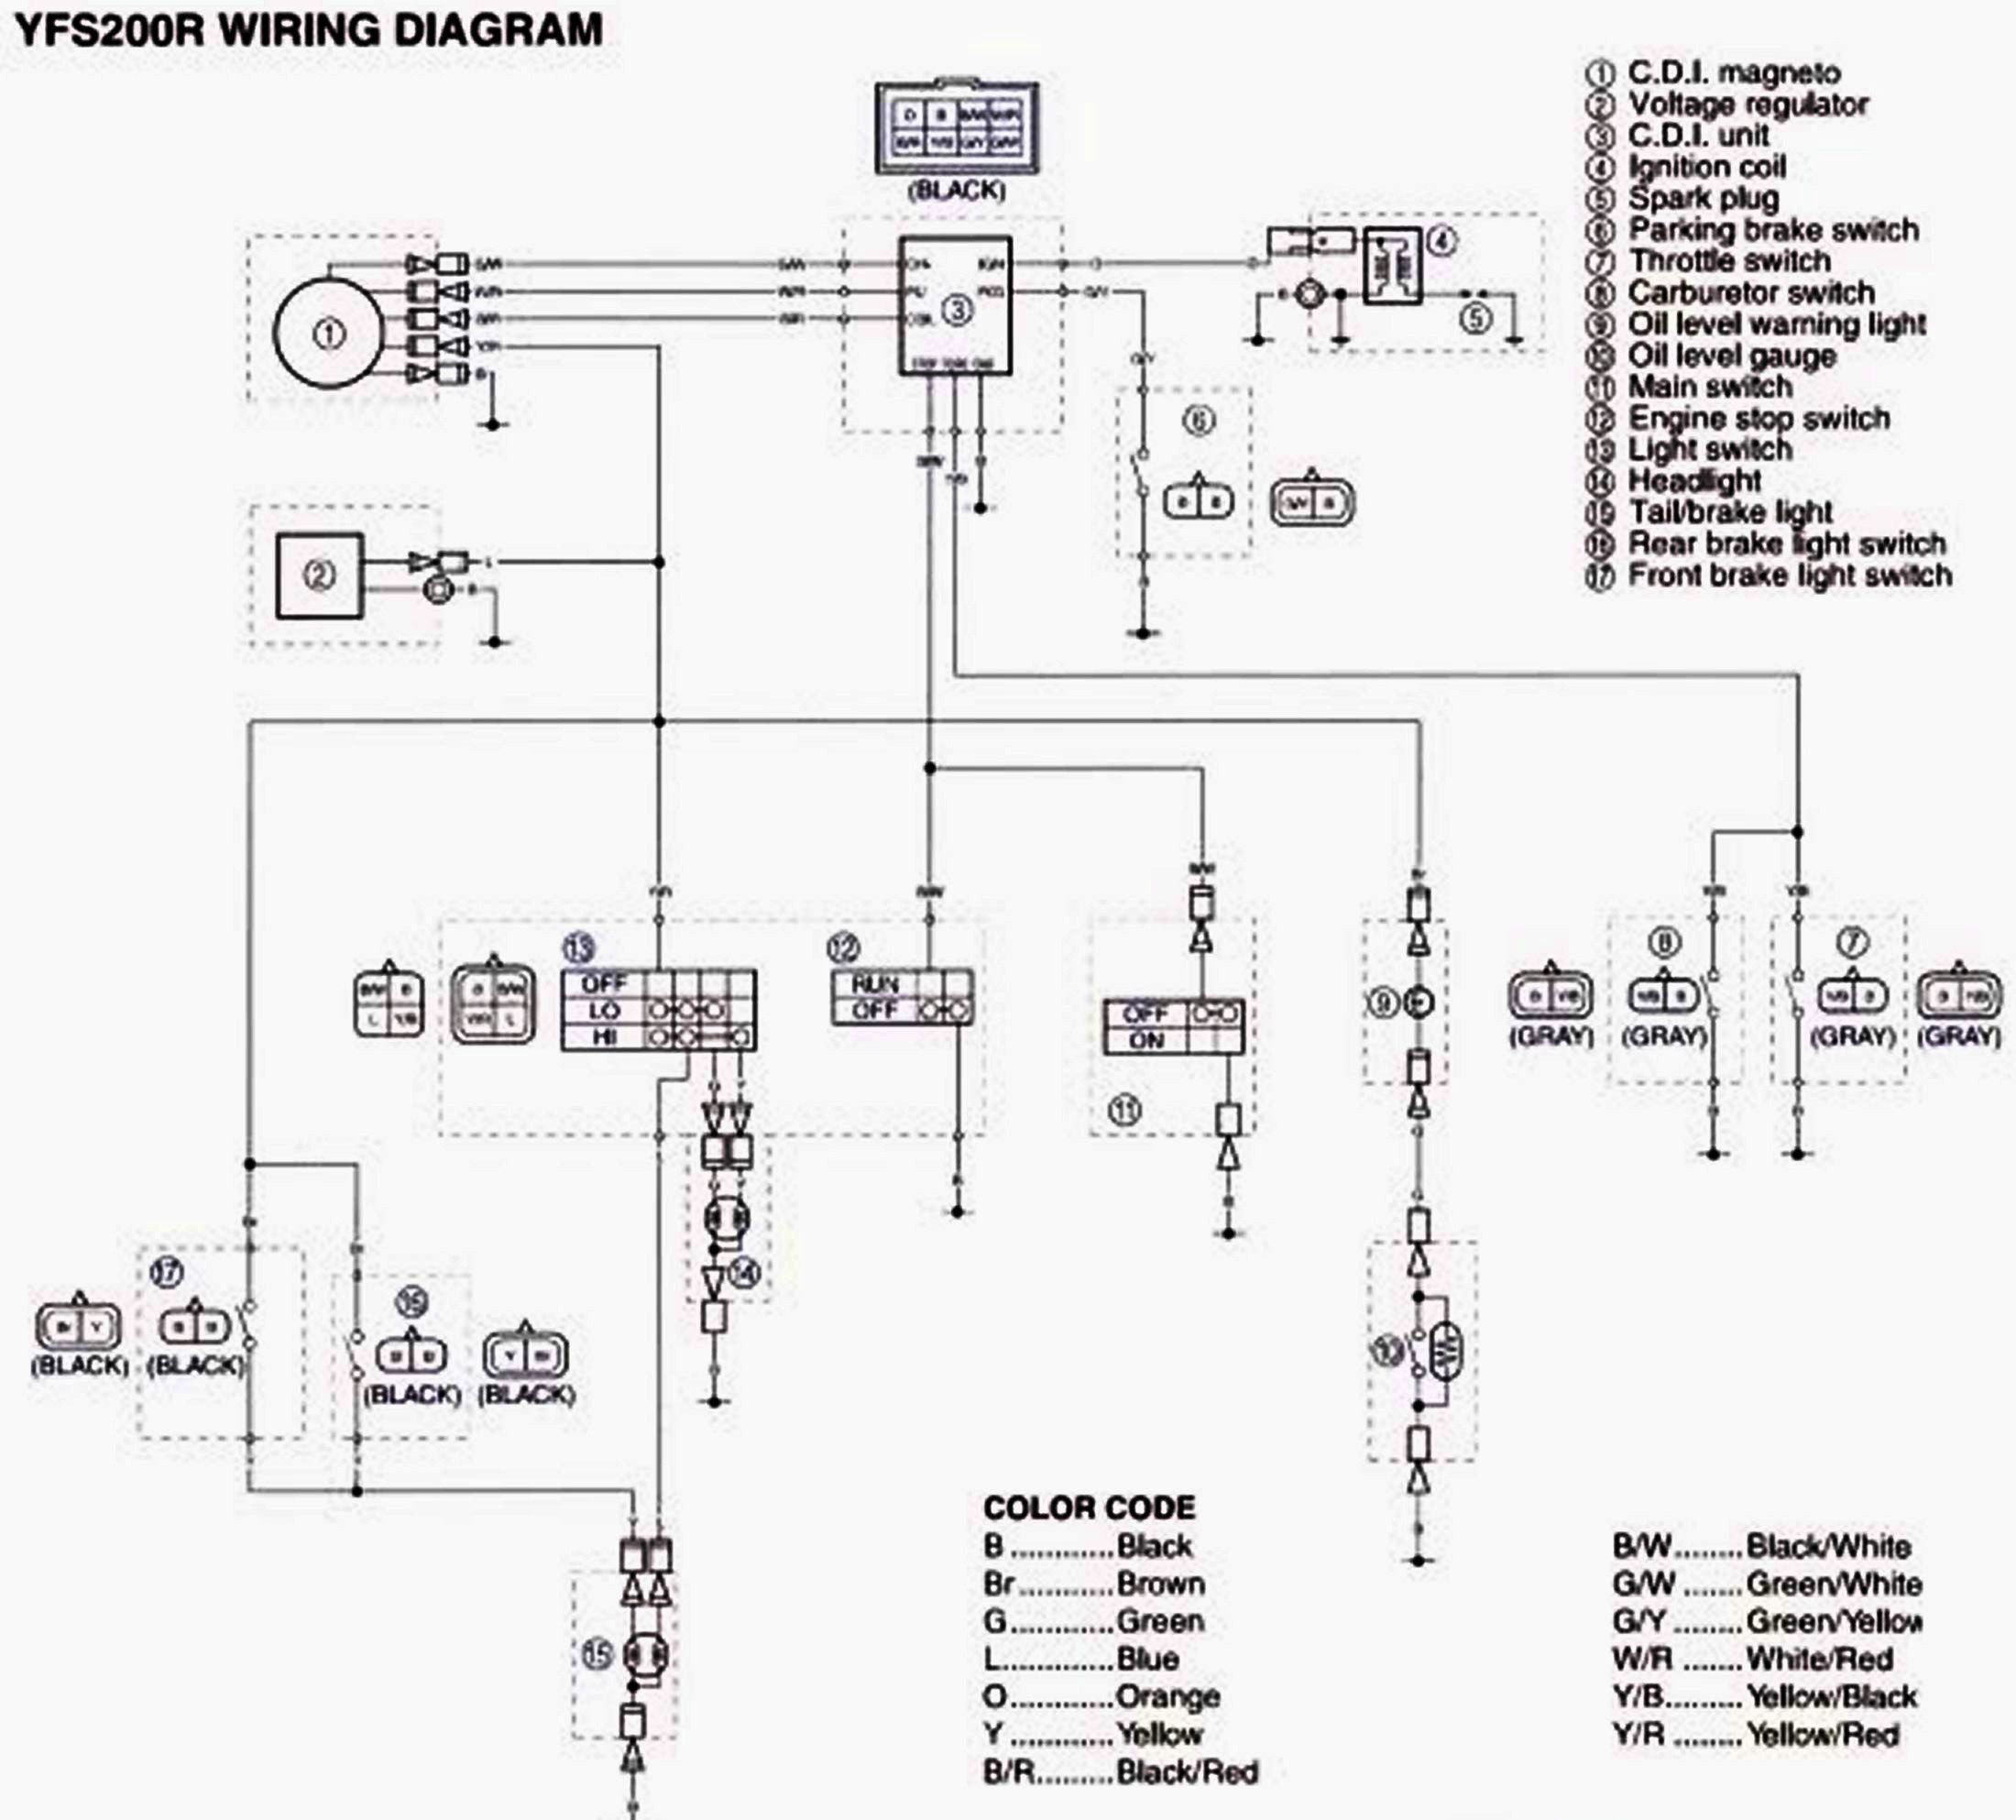 1998 Yamaha Big Bear Yfm 350 Wiring Diagram Quick Start Guide Of Grizzly Engine Waverunner Schematic Simple Rh 6 Terranut Store Atv 1994